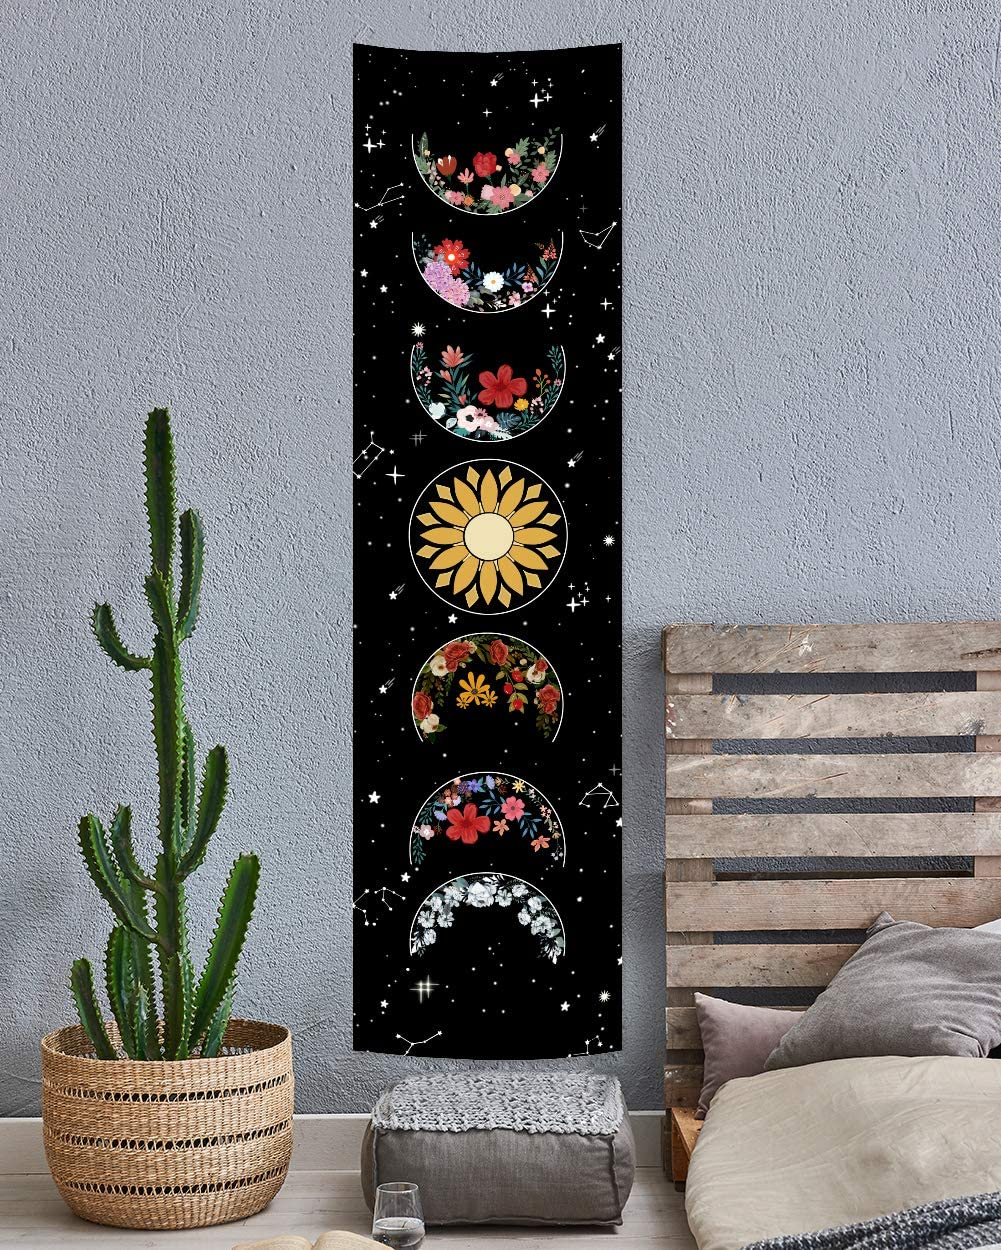 Moon Phase Tapestry Wall Hanging Flowers Moon Black and White Wall Art Tapestry for Badroom Living room Dorm Home Decor (Black, L:16x59 inch)